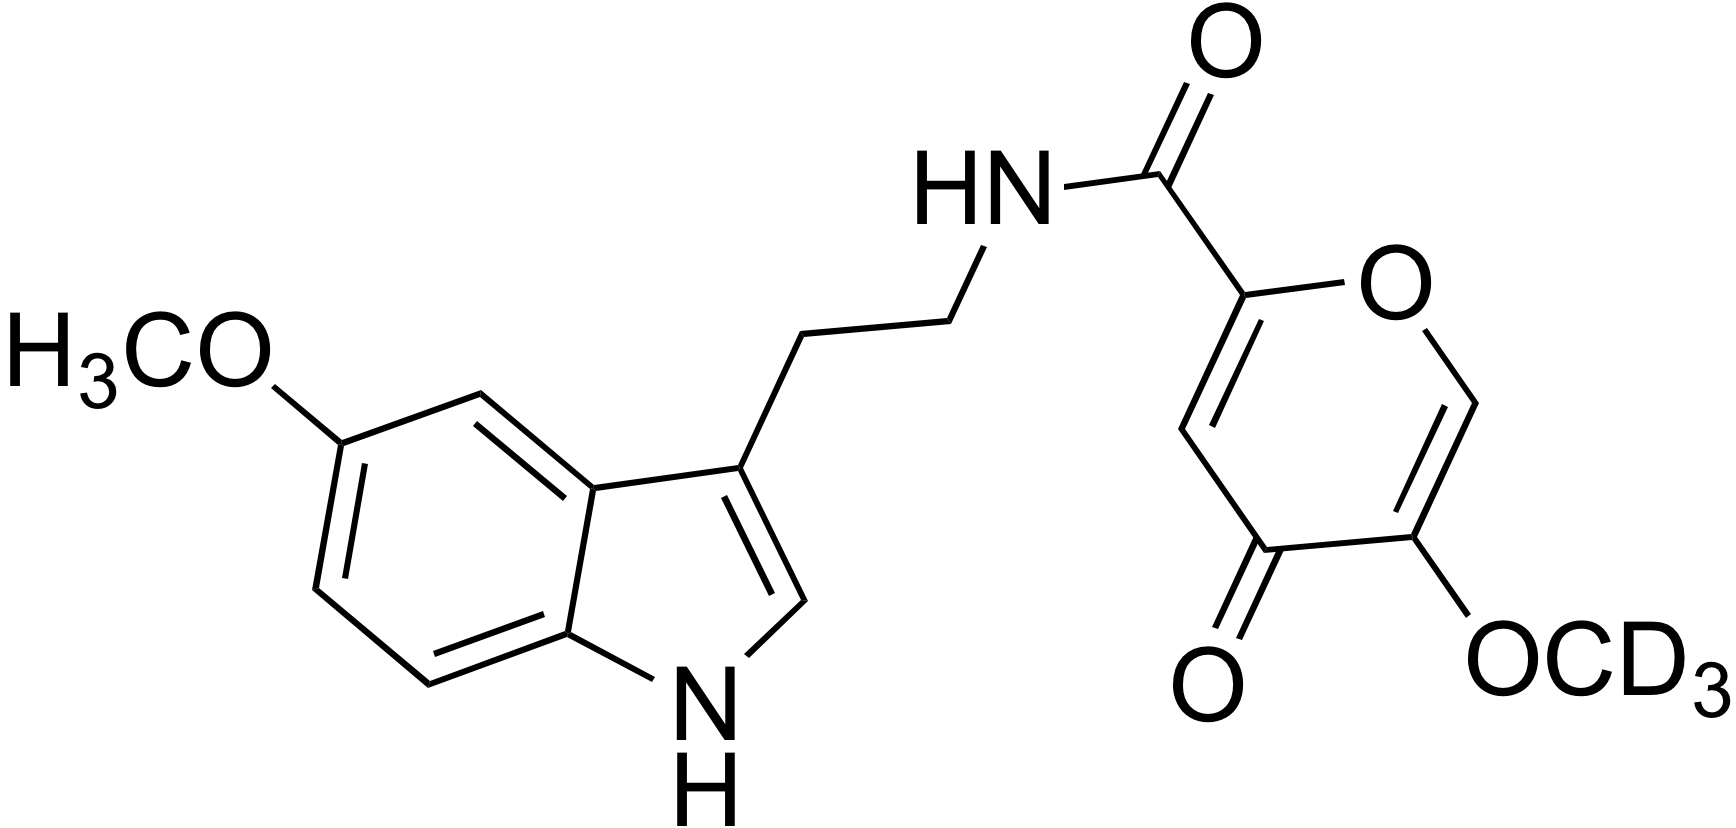 N-[2-(5-Methoxy-indol-3-yl)-ethyl]-2-methoxy-d<sub>3</sub>-commenamide